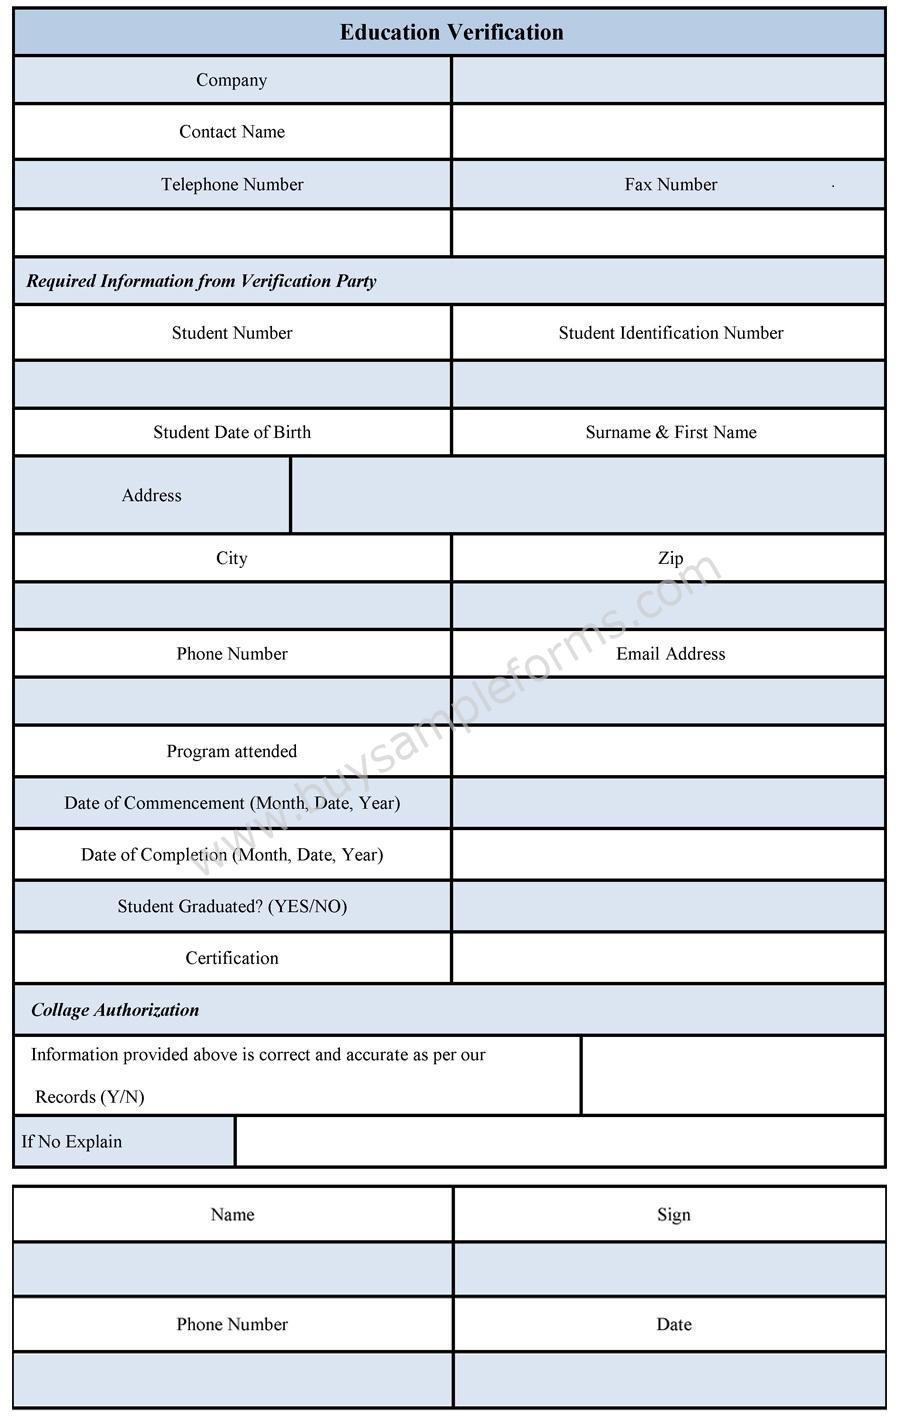 Employment Verification form Template